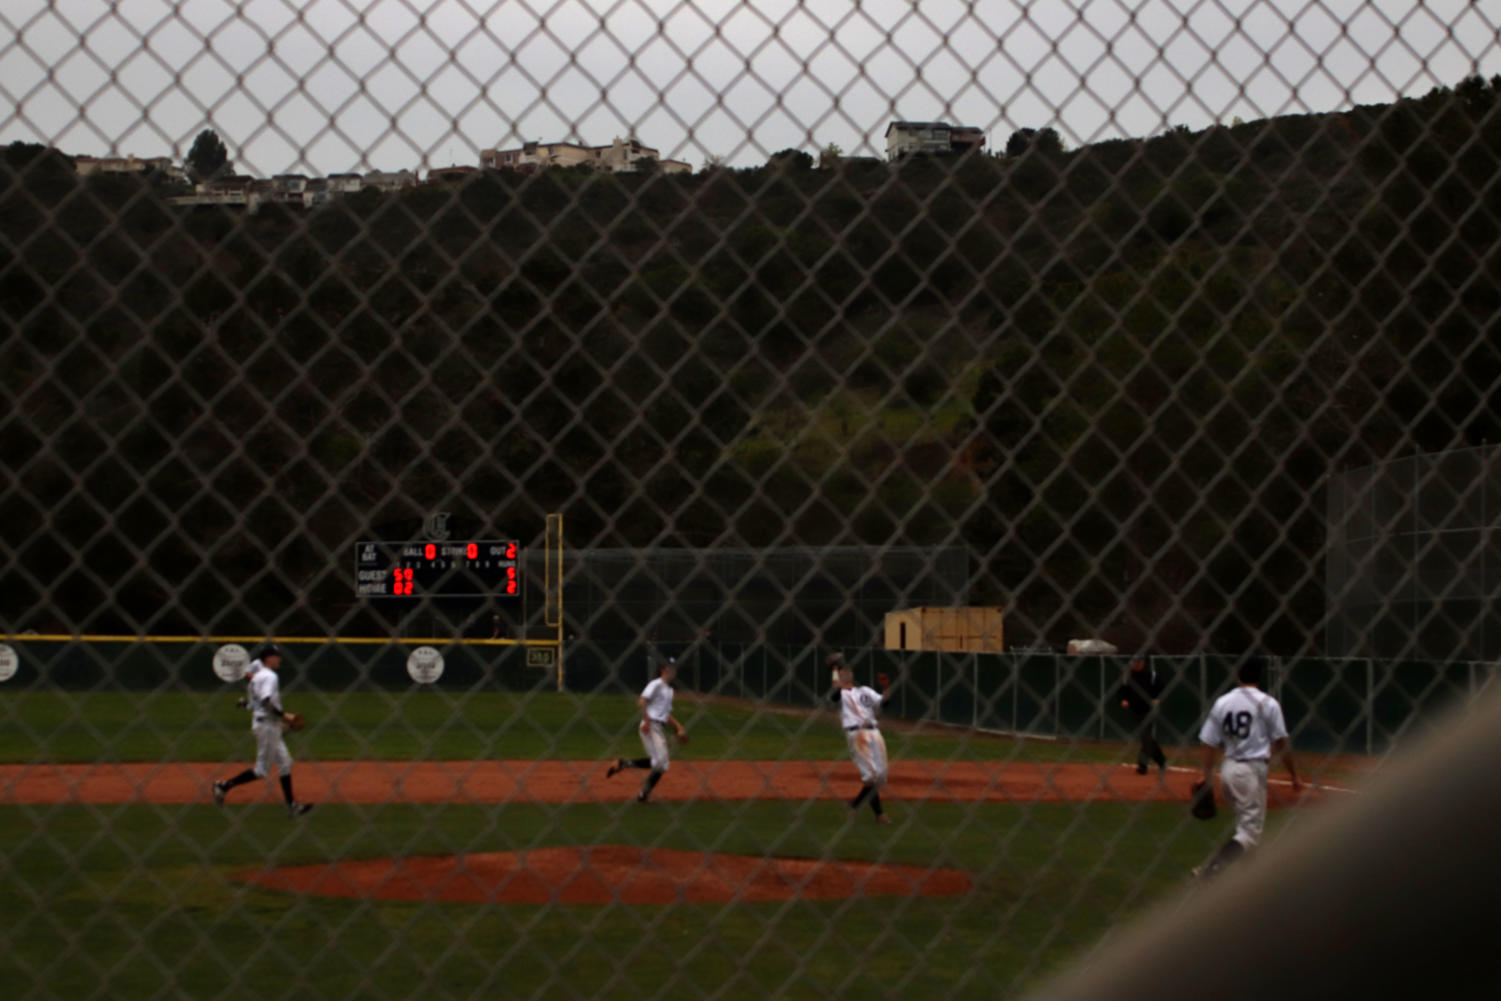 First+baseman+Croshal+catches+an+infield+fly+ball+in+the+3rd+inning.